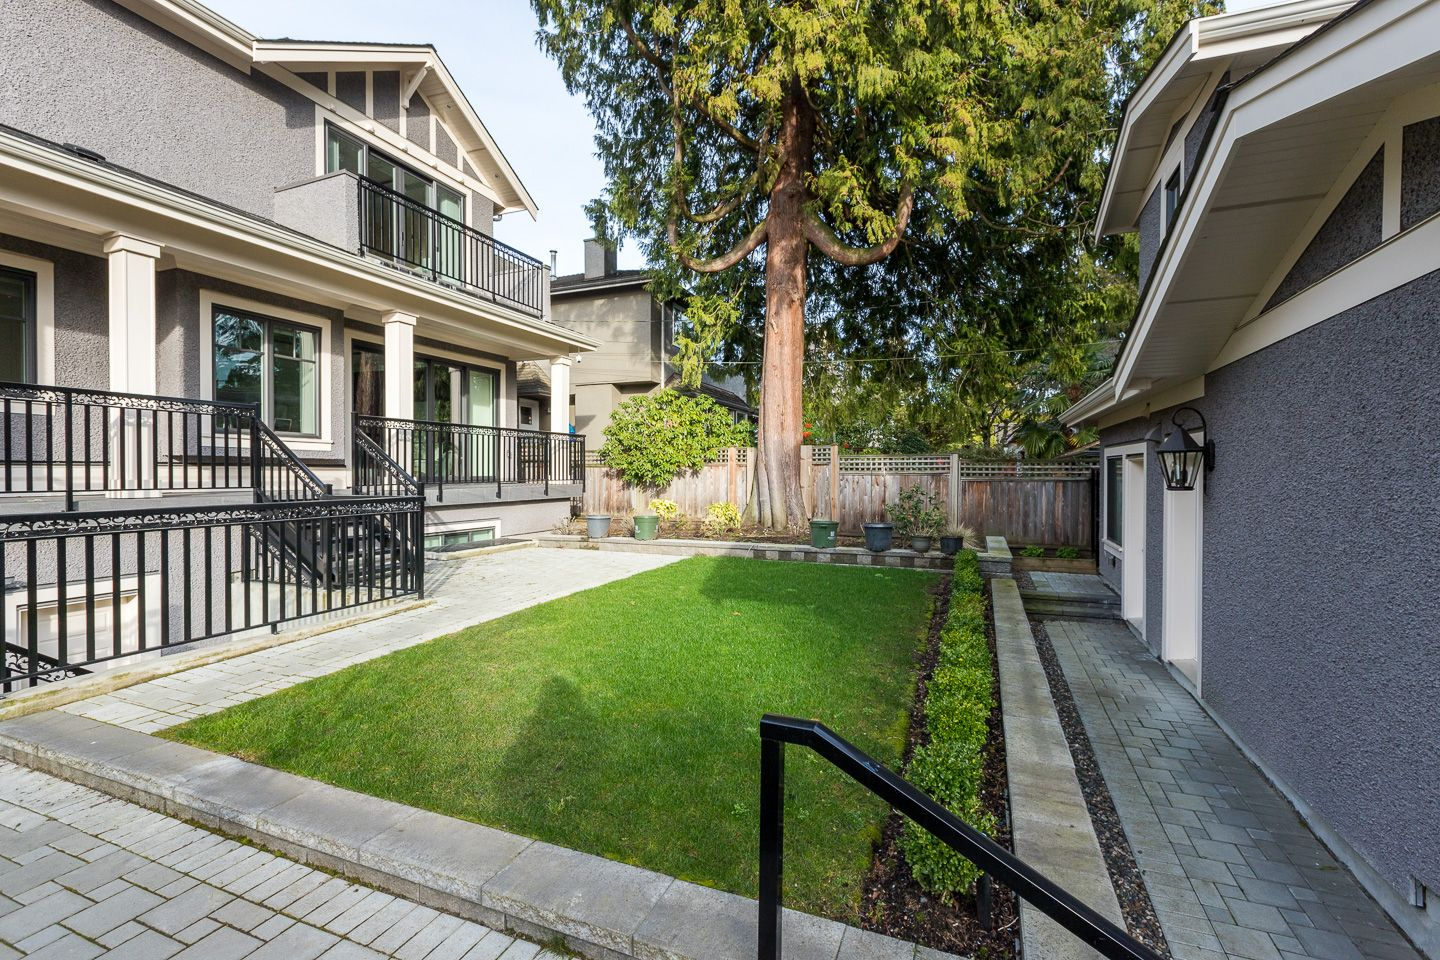 Photo 43: Photos: 1744 WEST 61ST AVE in VANCOUVER: South Granville House for sale (Vancouver West)  : MLS®# R2546980